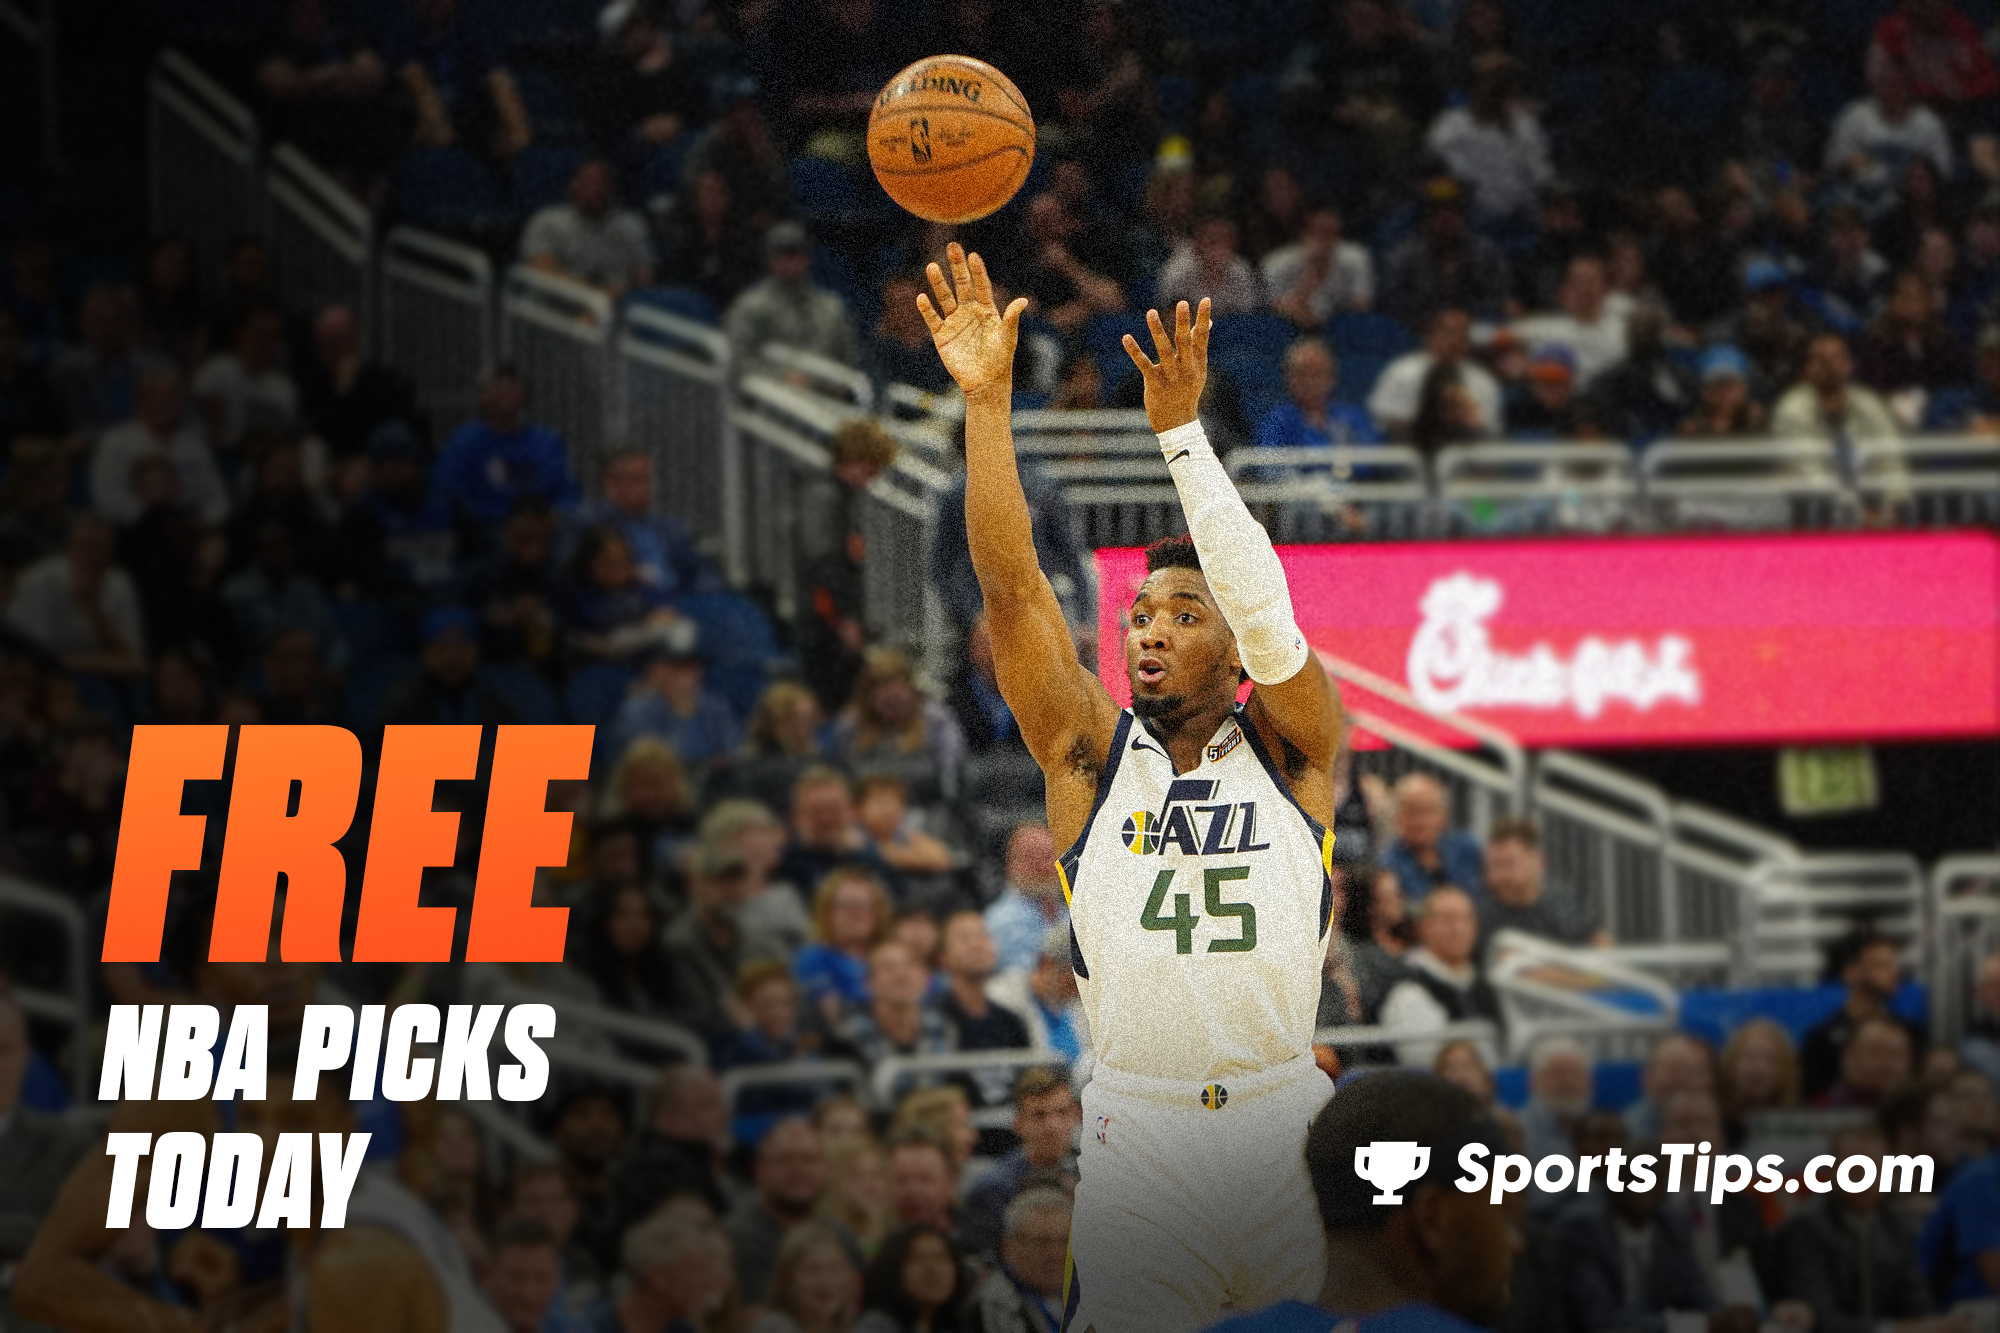 Free NBA Picks Today for Saturday, May 1st, 2021